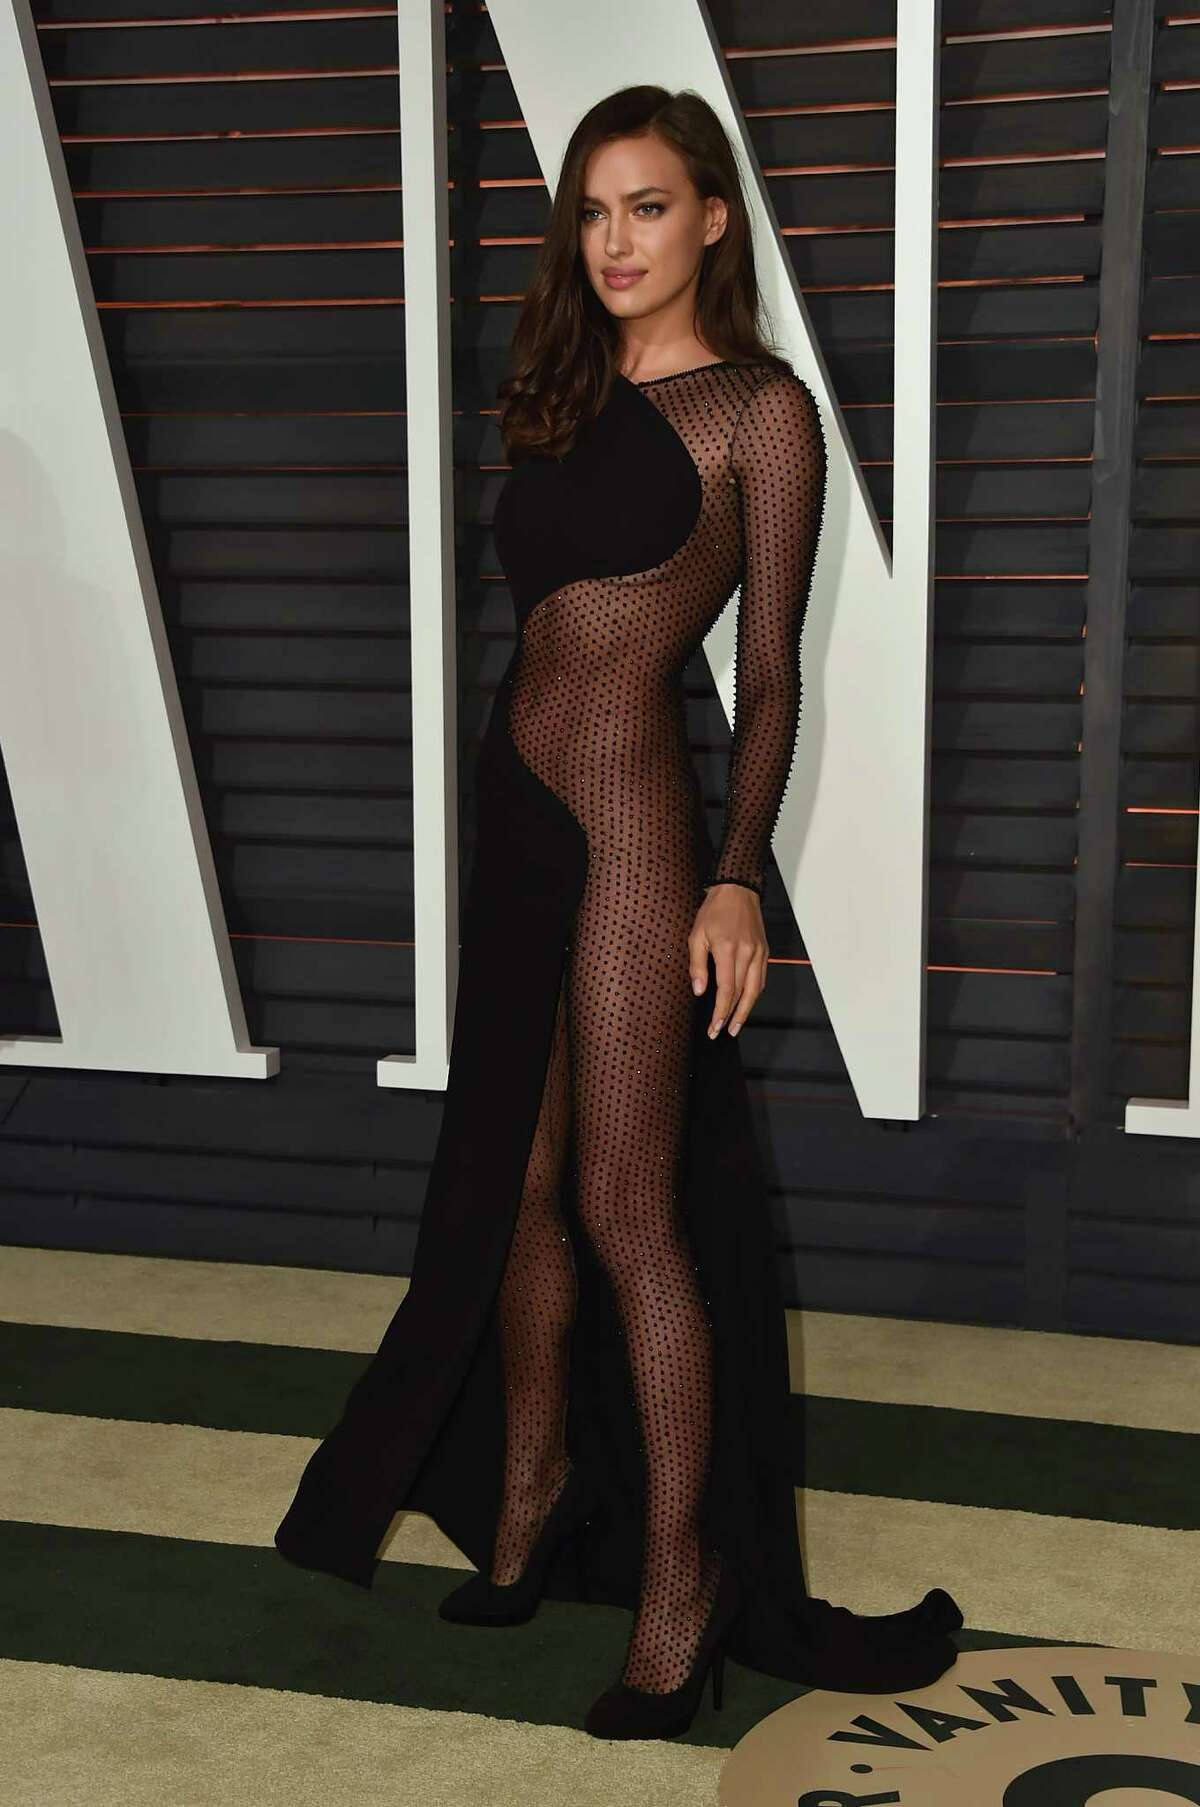 Model Irina Shayk attends the 2015 Vanity Fair Oscar Party hosted by Graydon Carter at Wallis Annenberg Center for the Performing Arts on February 22, 2015 in Beverly Hills, California.